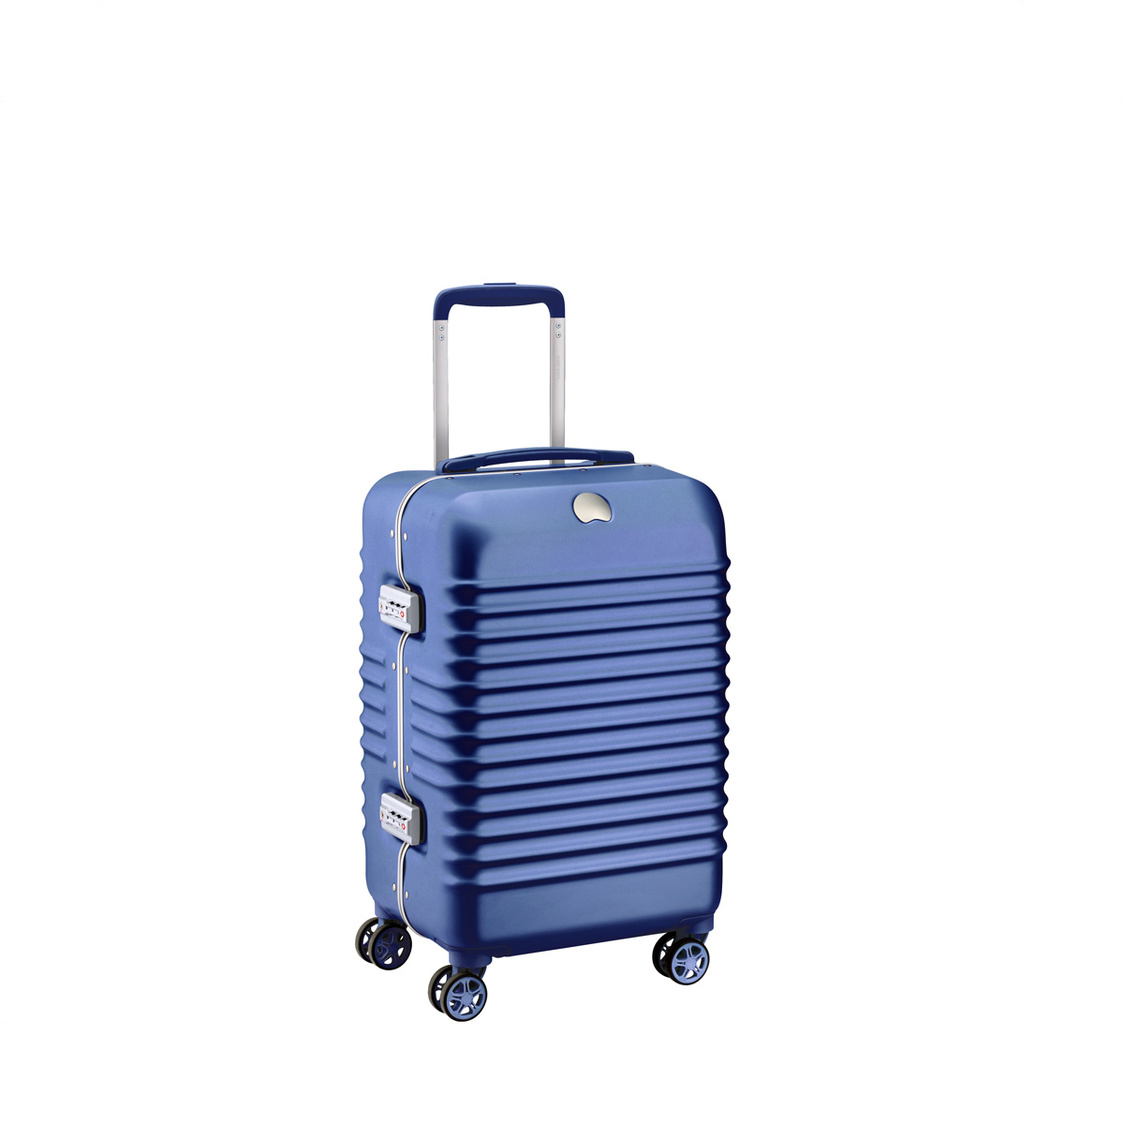 Bastille Frame 4 Double Wheels Cabin Trolley Case 55cm